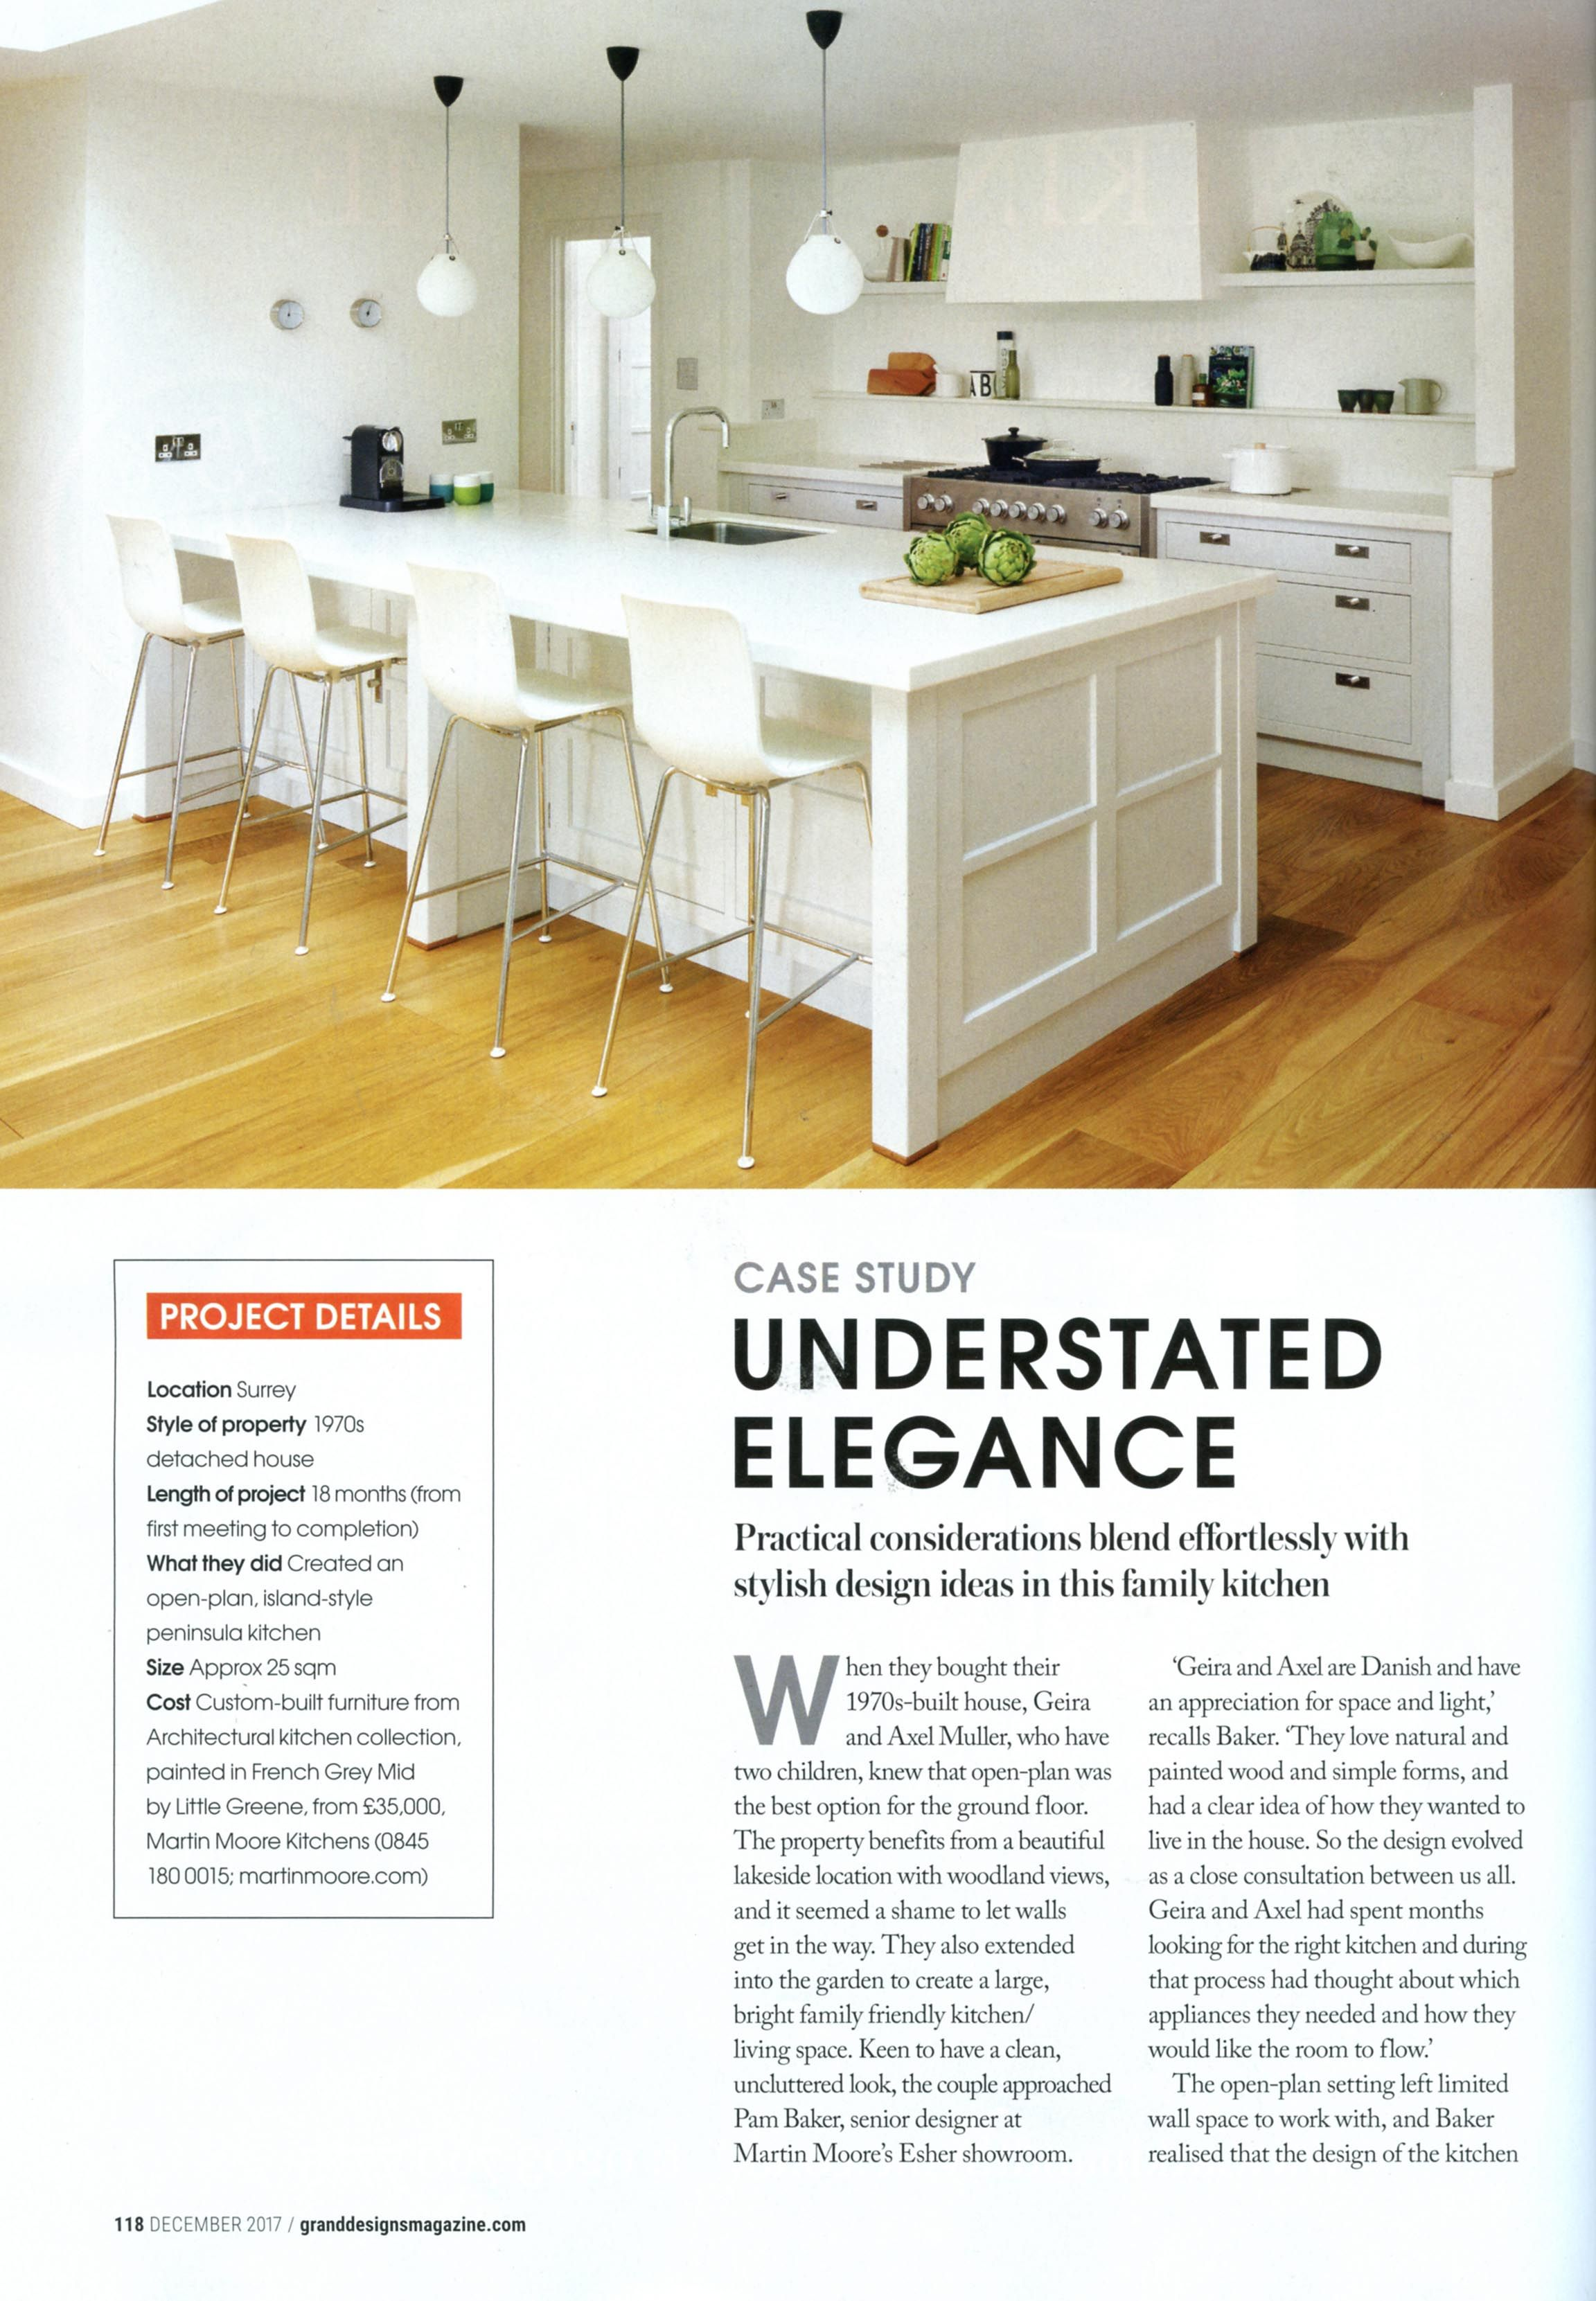 This case study features a beautiful custom-built kitchen from ...